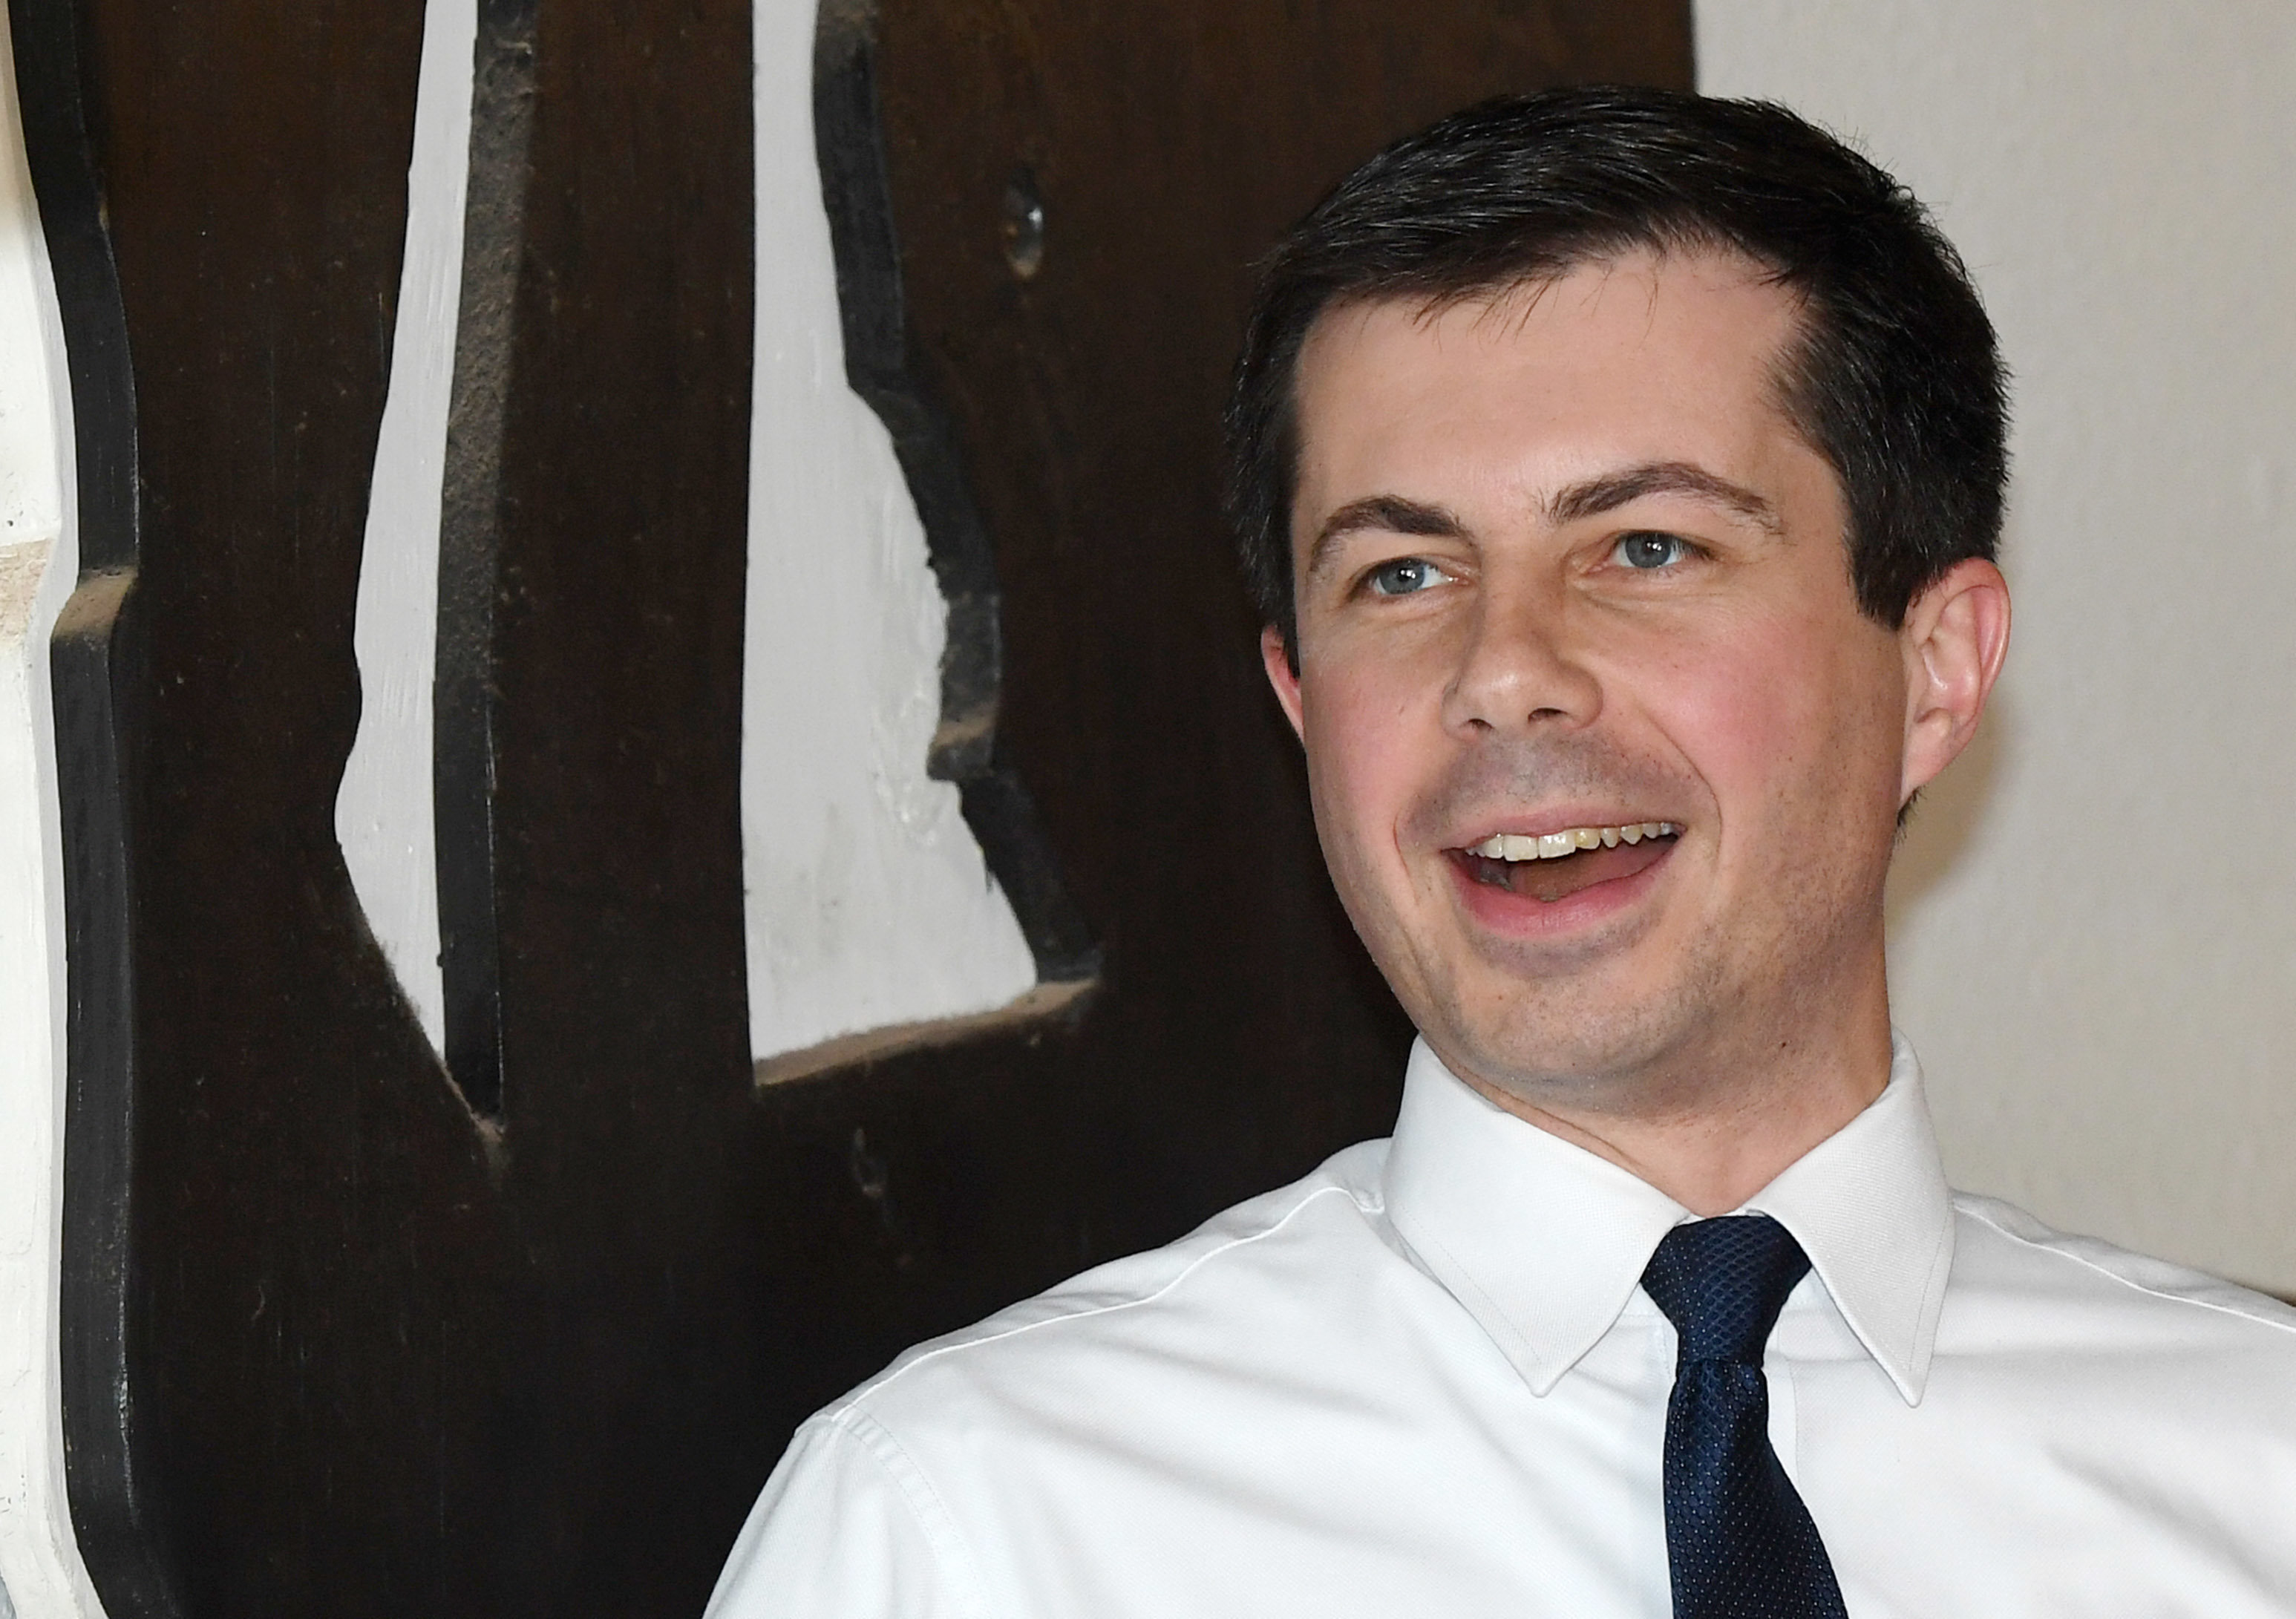 Presidential hopeful Pete Buttigieg speaks at a meet-and-greet at Madhouse Coffee on April 8, 2019, in Las Vegas.